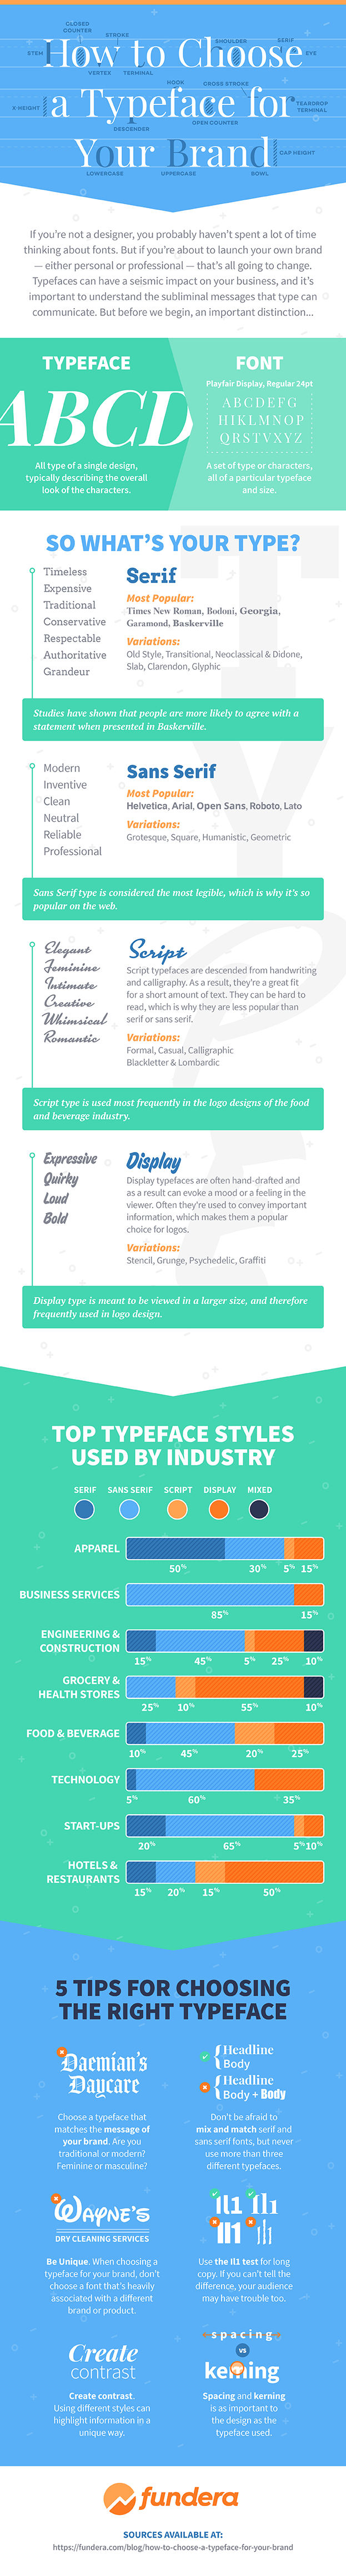 How To Choose A Typeface For Your Brand - #infographic